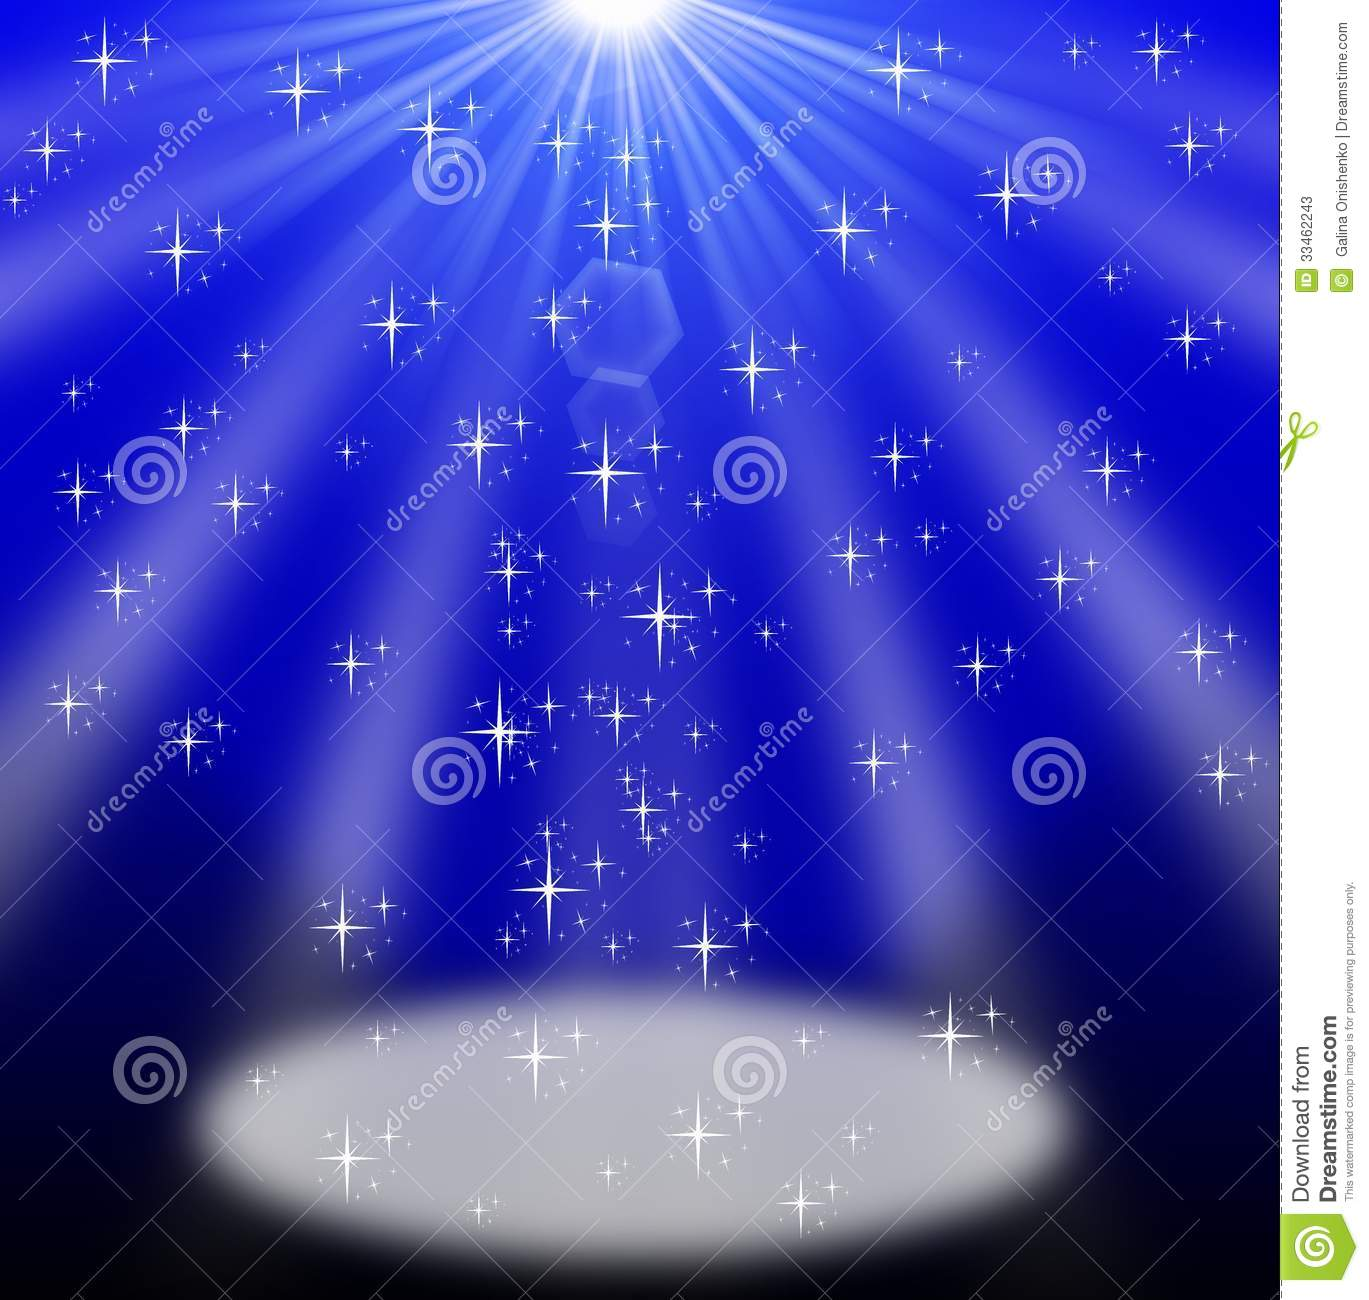 3d Effect Wallpapers Free Download Lighted Up Stage Bright Blue Background For A Design Stock